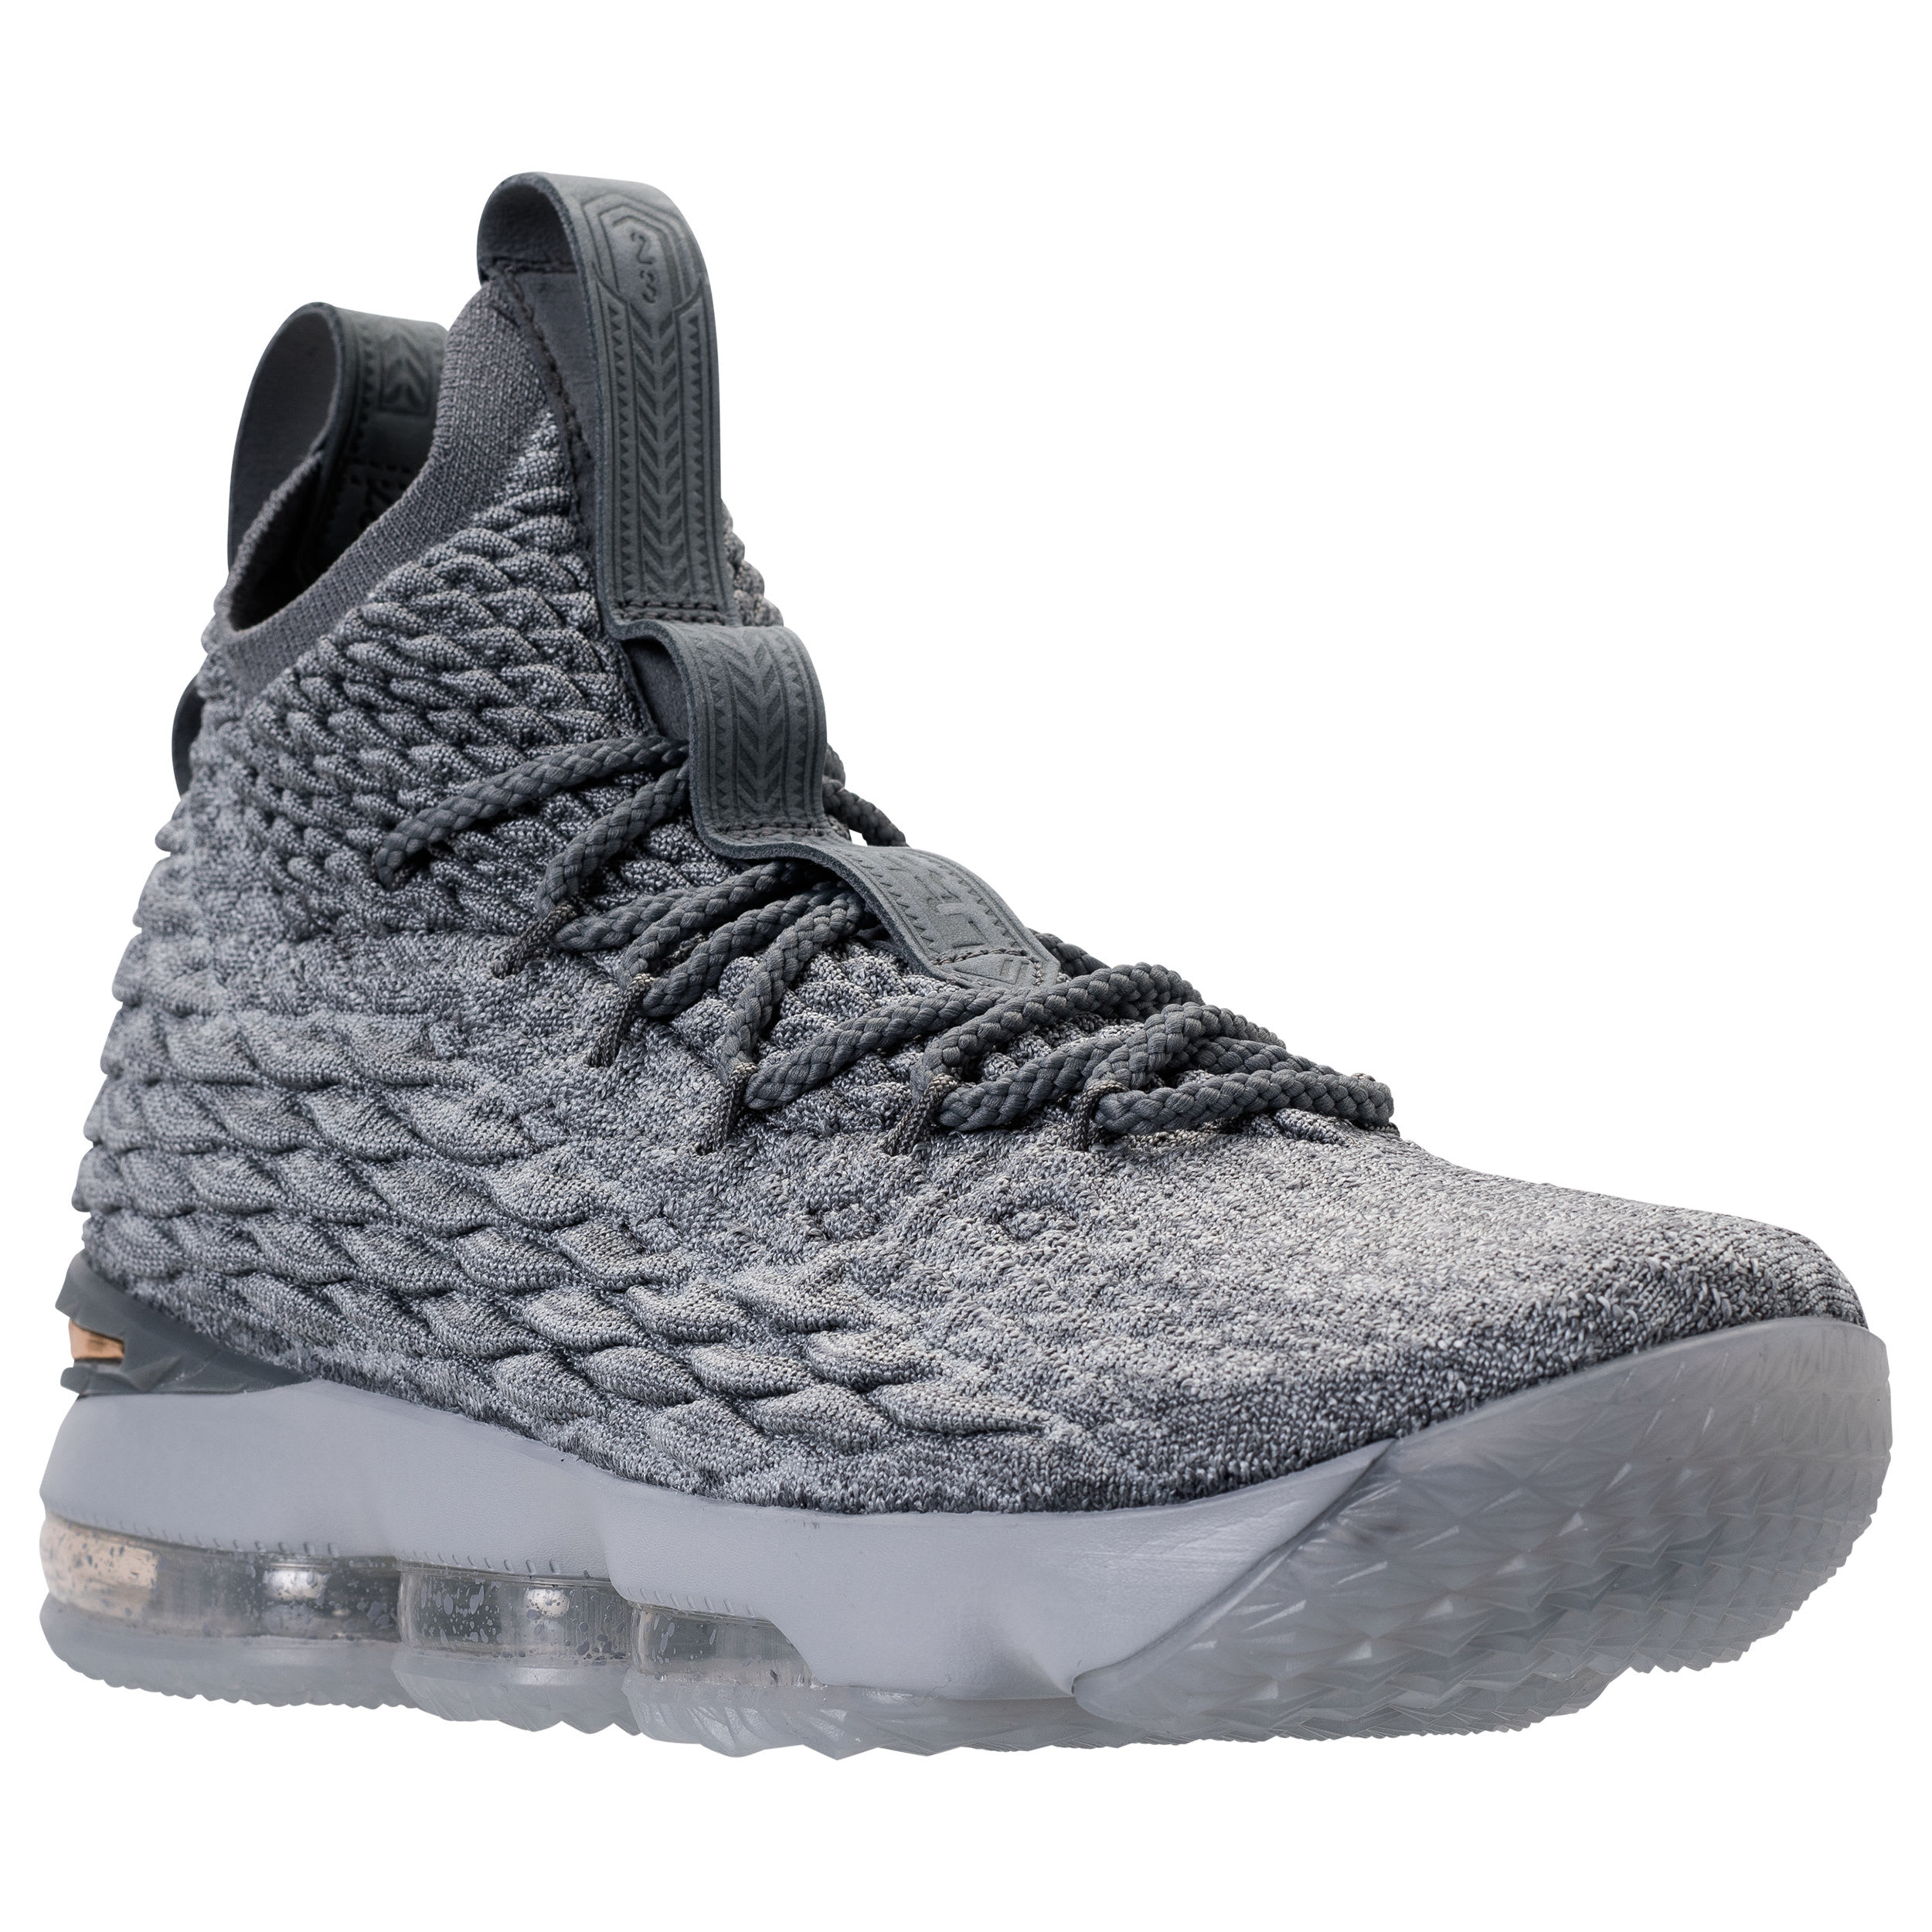 89503fdc825 ... reduced image via us11 nike lebron 15 city edition 897648 005 14cf4  aceff